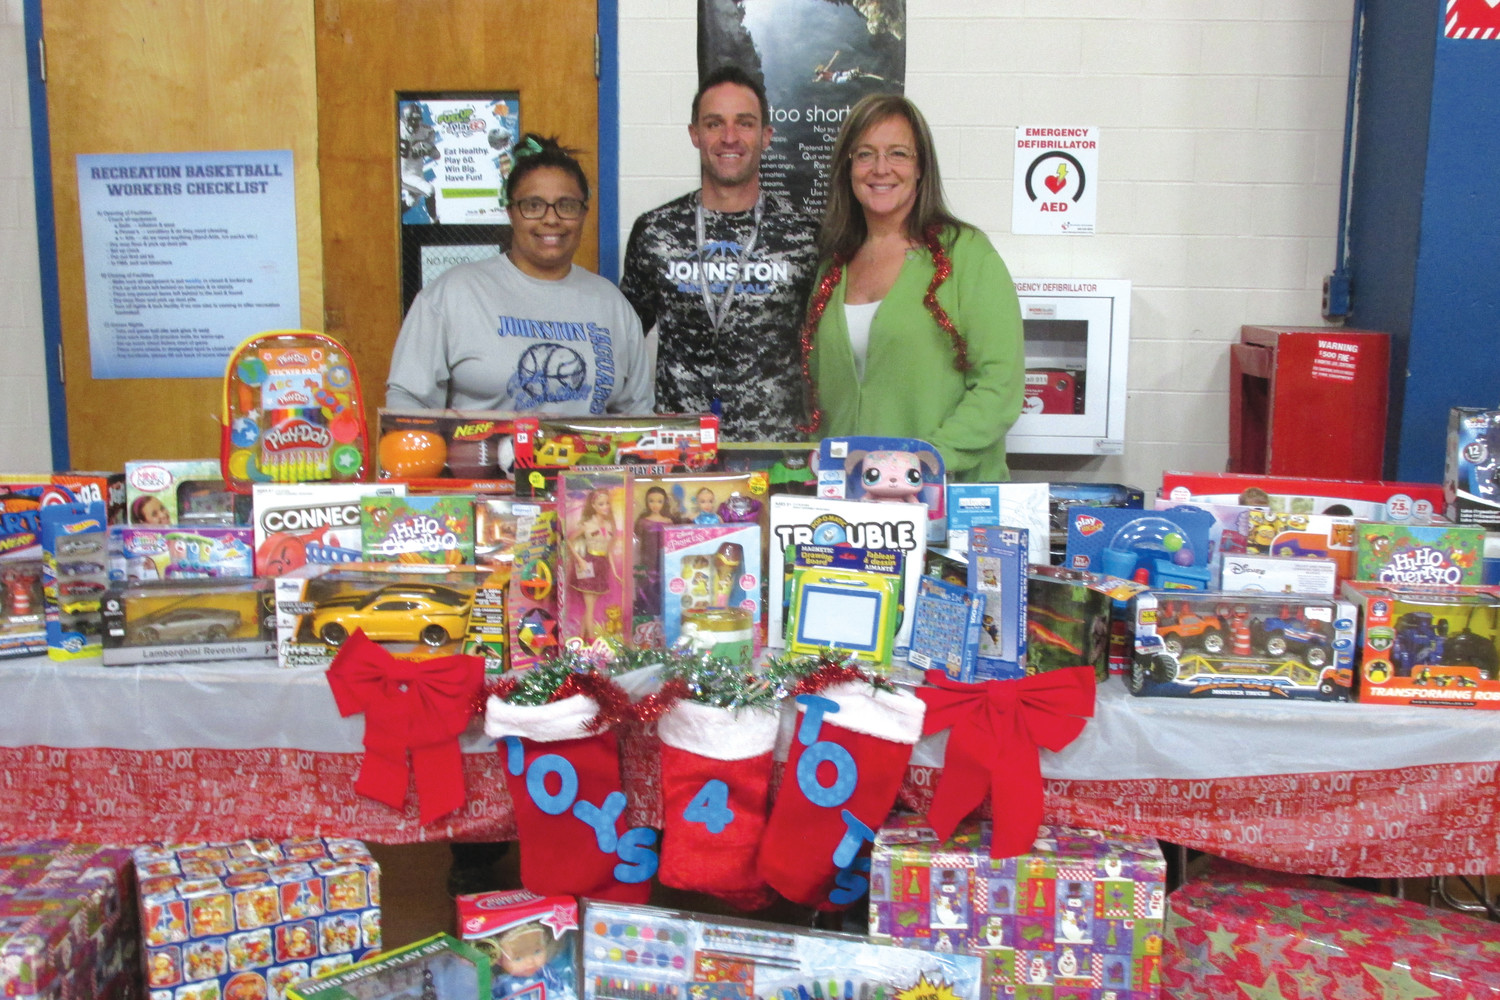 GRAND GIVERS: Gianna Mazzulla, Brian Iafrate and Greta Lalli stand behind just one of the many tables that were topped with toys and games during the Toys for Tots Scrimmage in Johnston.